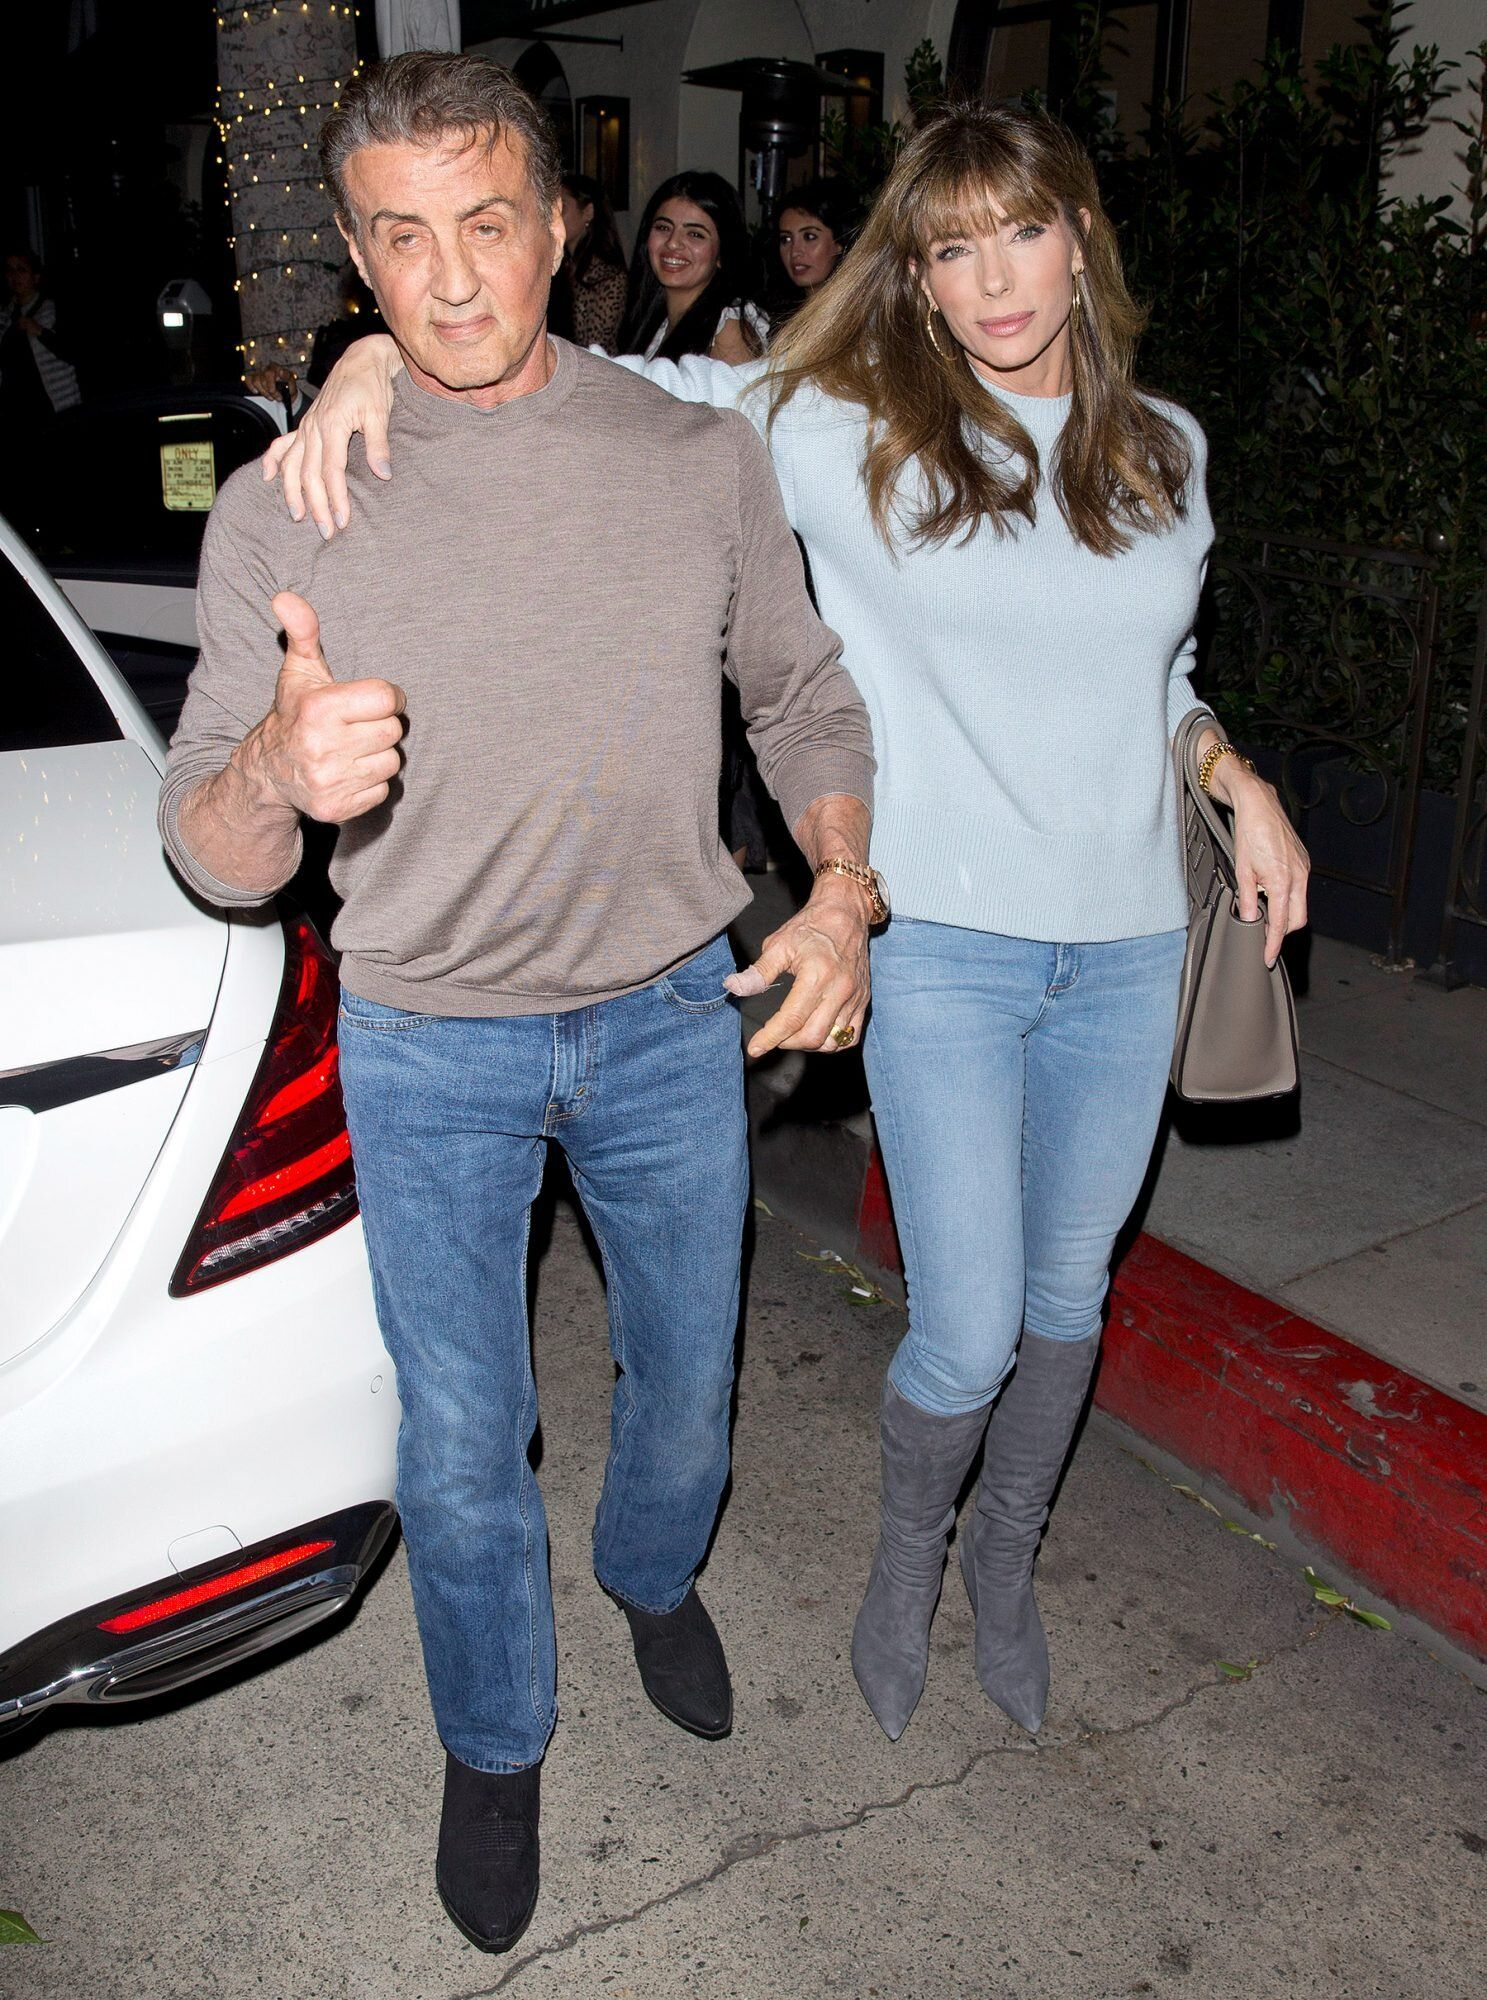 Stallone Family Outing Sylvester And Wife Jennifer Flavin Have Dinner With Daughters In 2020 Jennifer Flavin Sylvester Stallone Sylvester